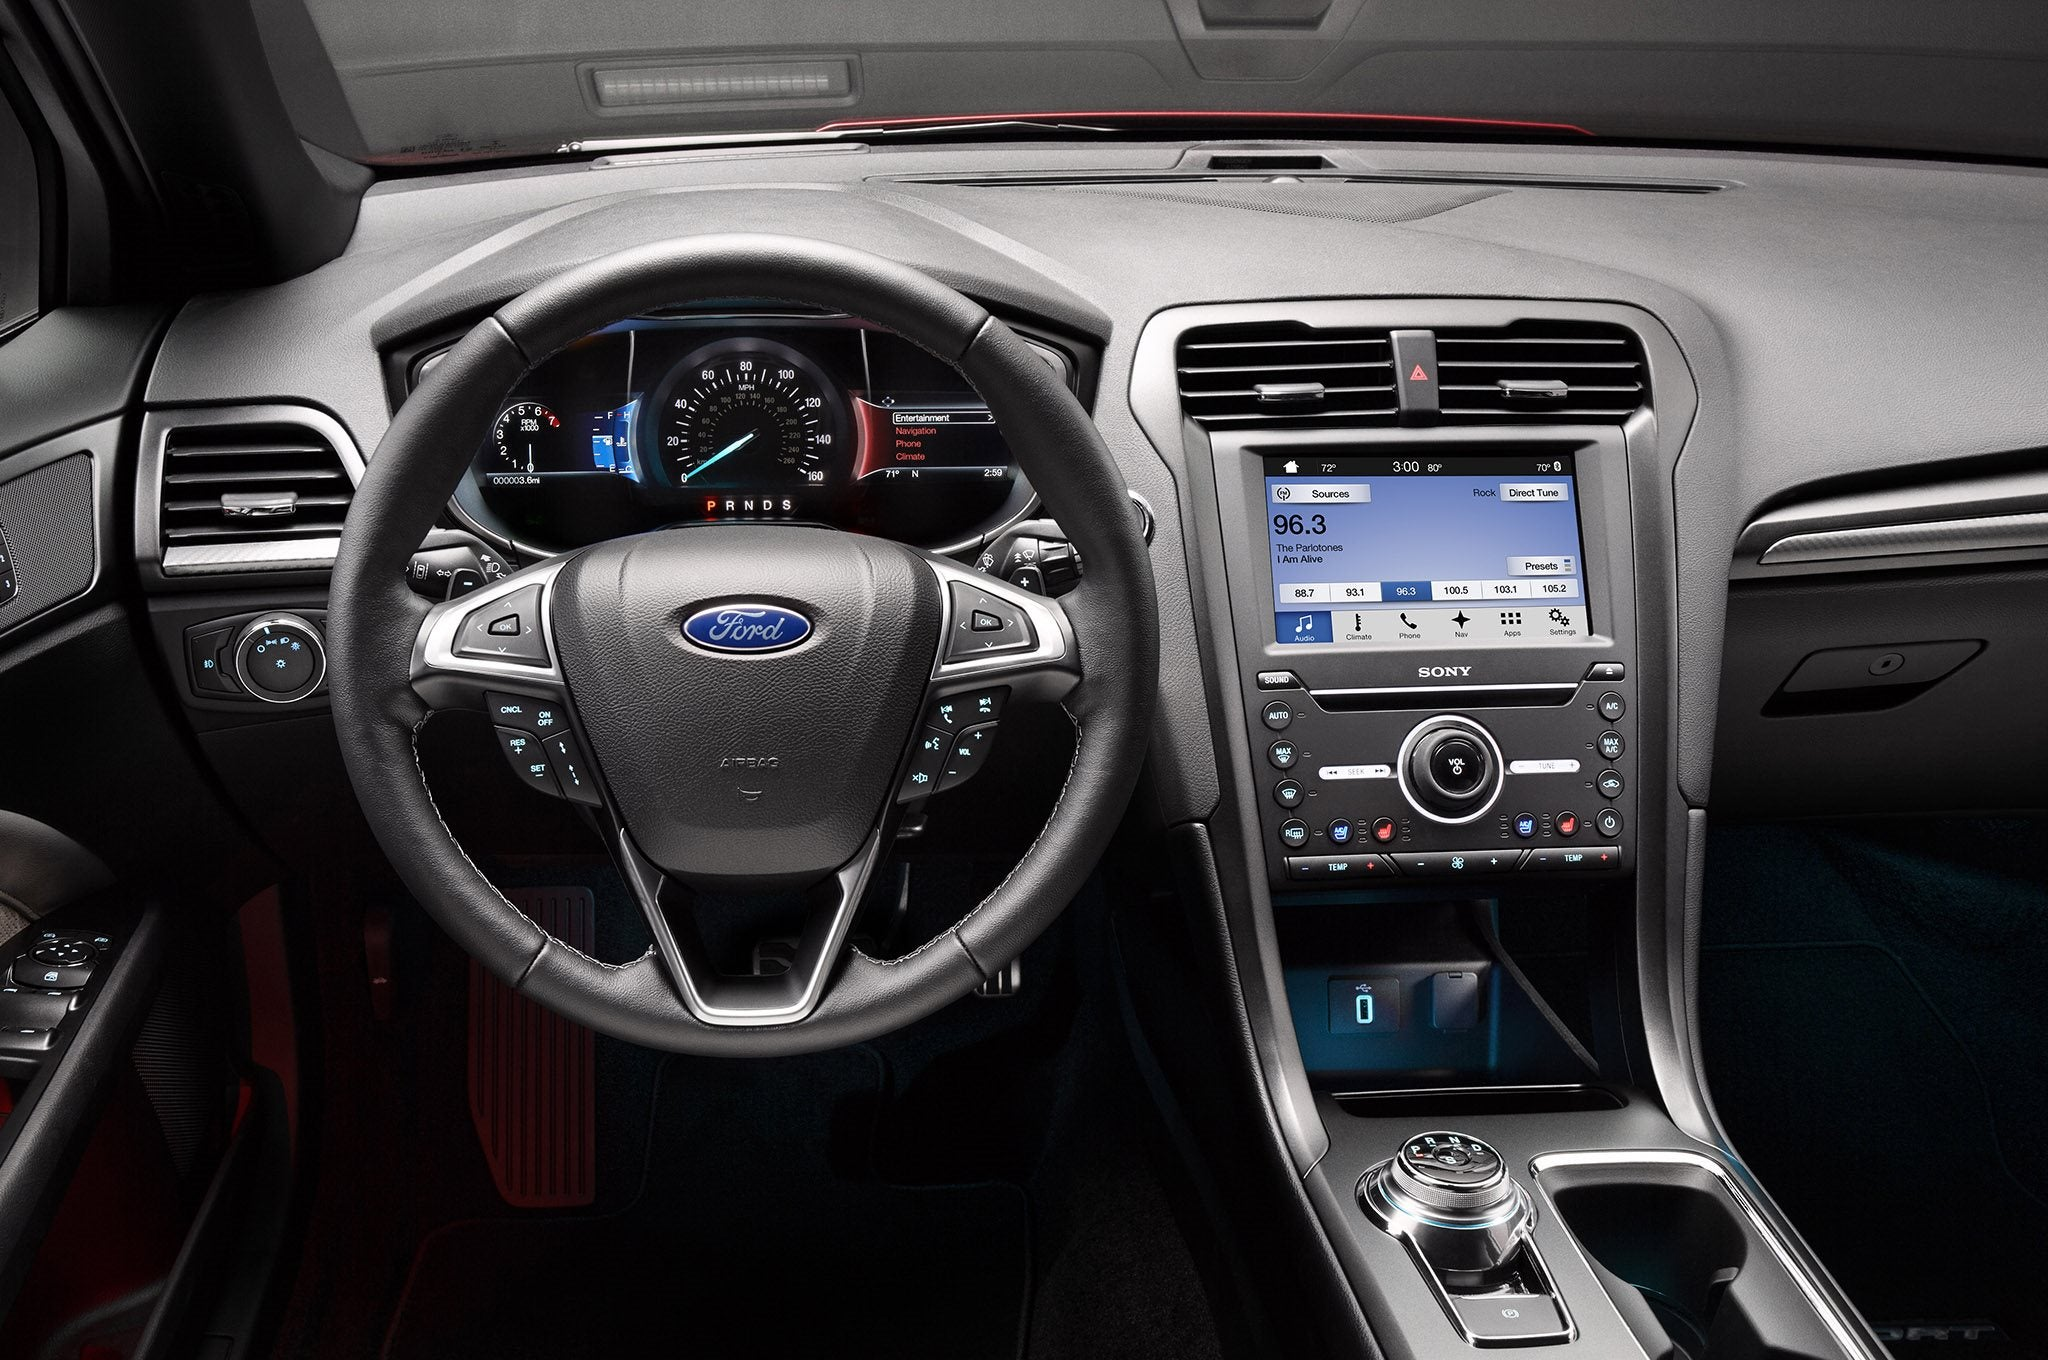 A Modern Interior The New Ford Fusion